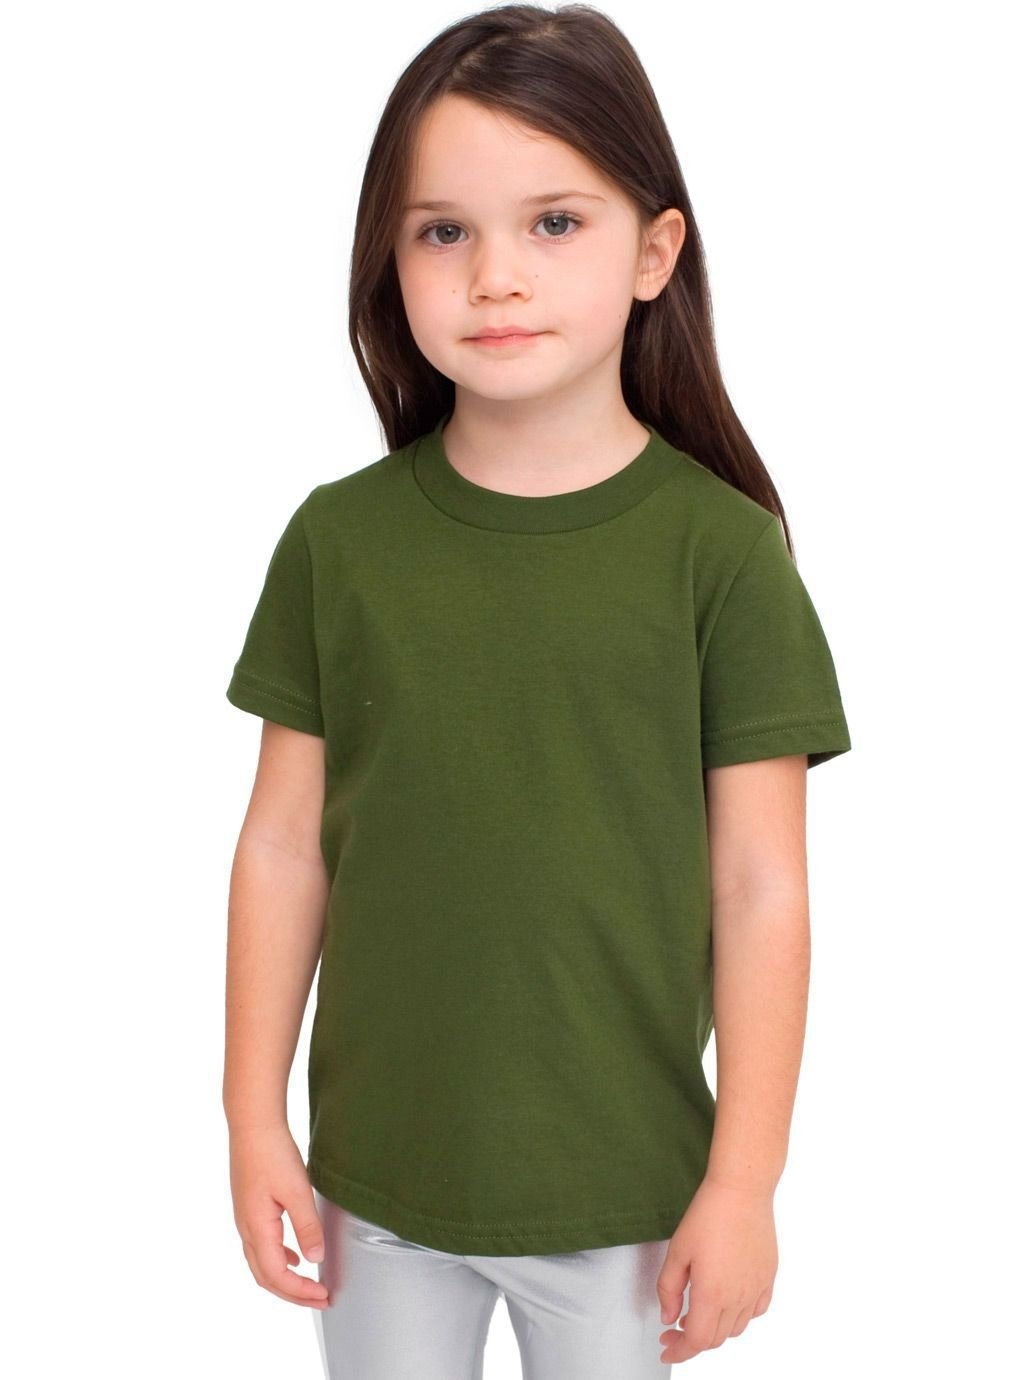 American Apparel Toddlers Fine Jersey Short-Sleeve T-Shirt (2105) -OLIVE -2T